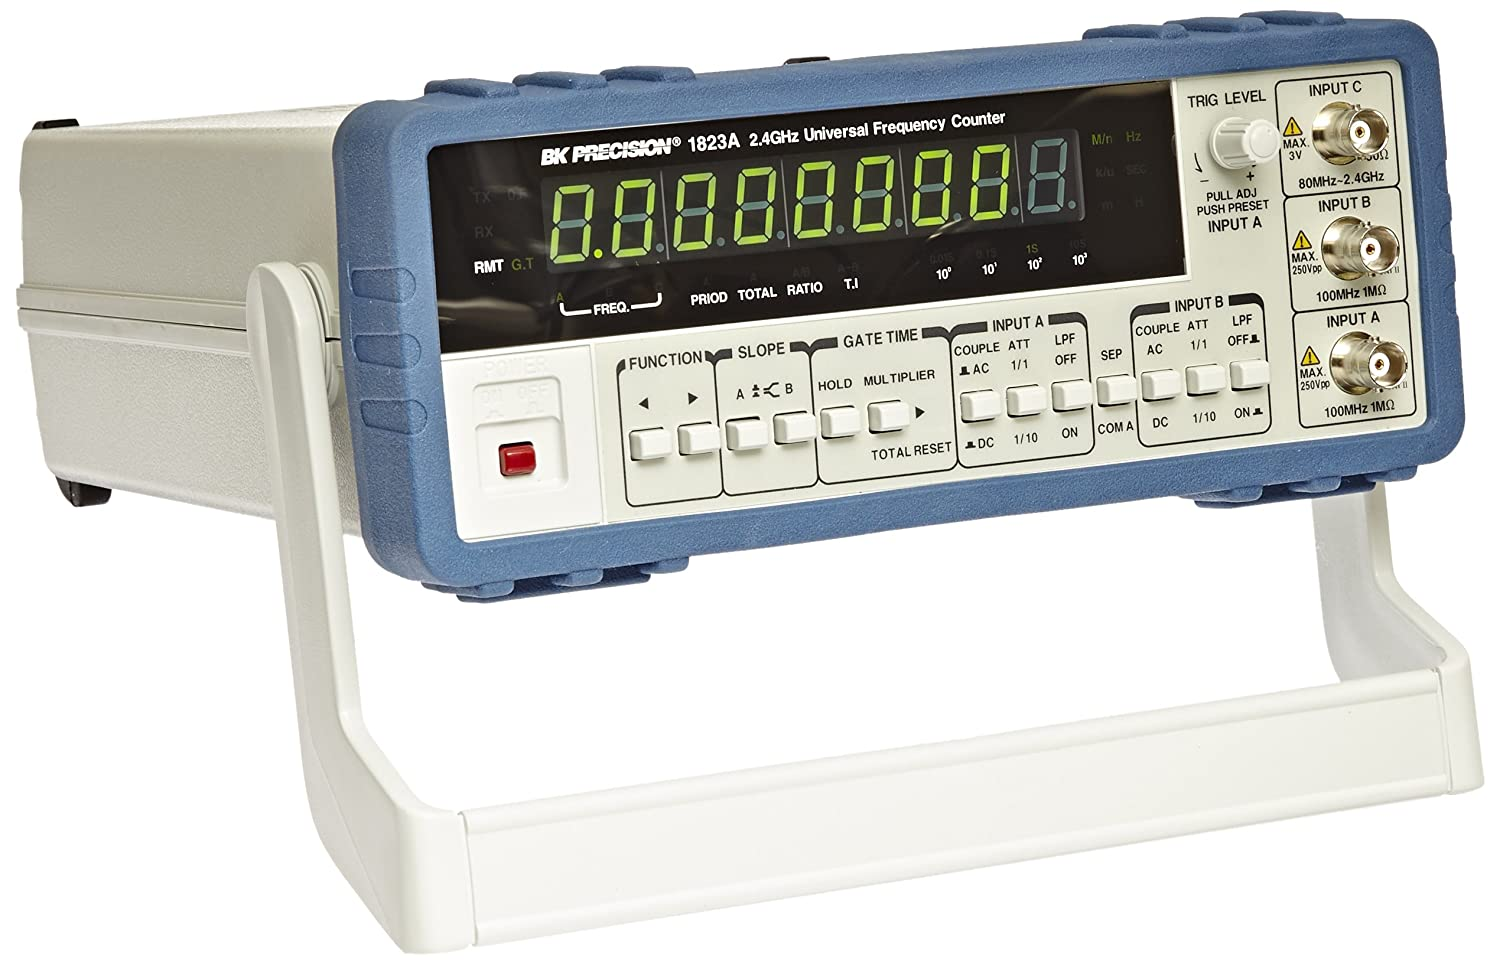 Frequency Counters Pulse Generators Counter And Timer Bk Precision 1823a Universal With Ratio Function